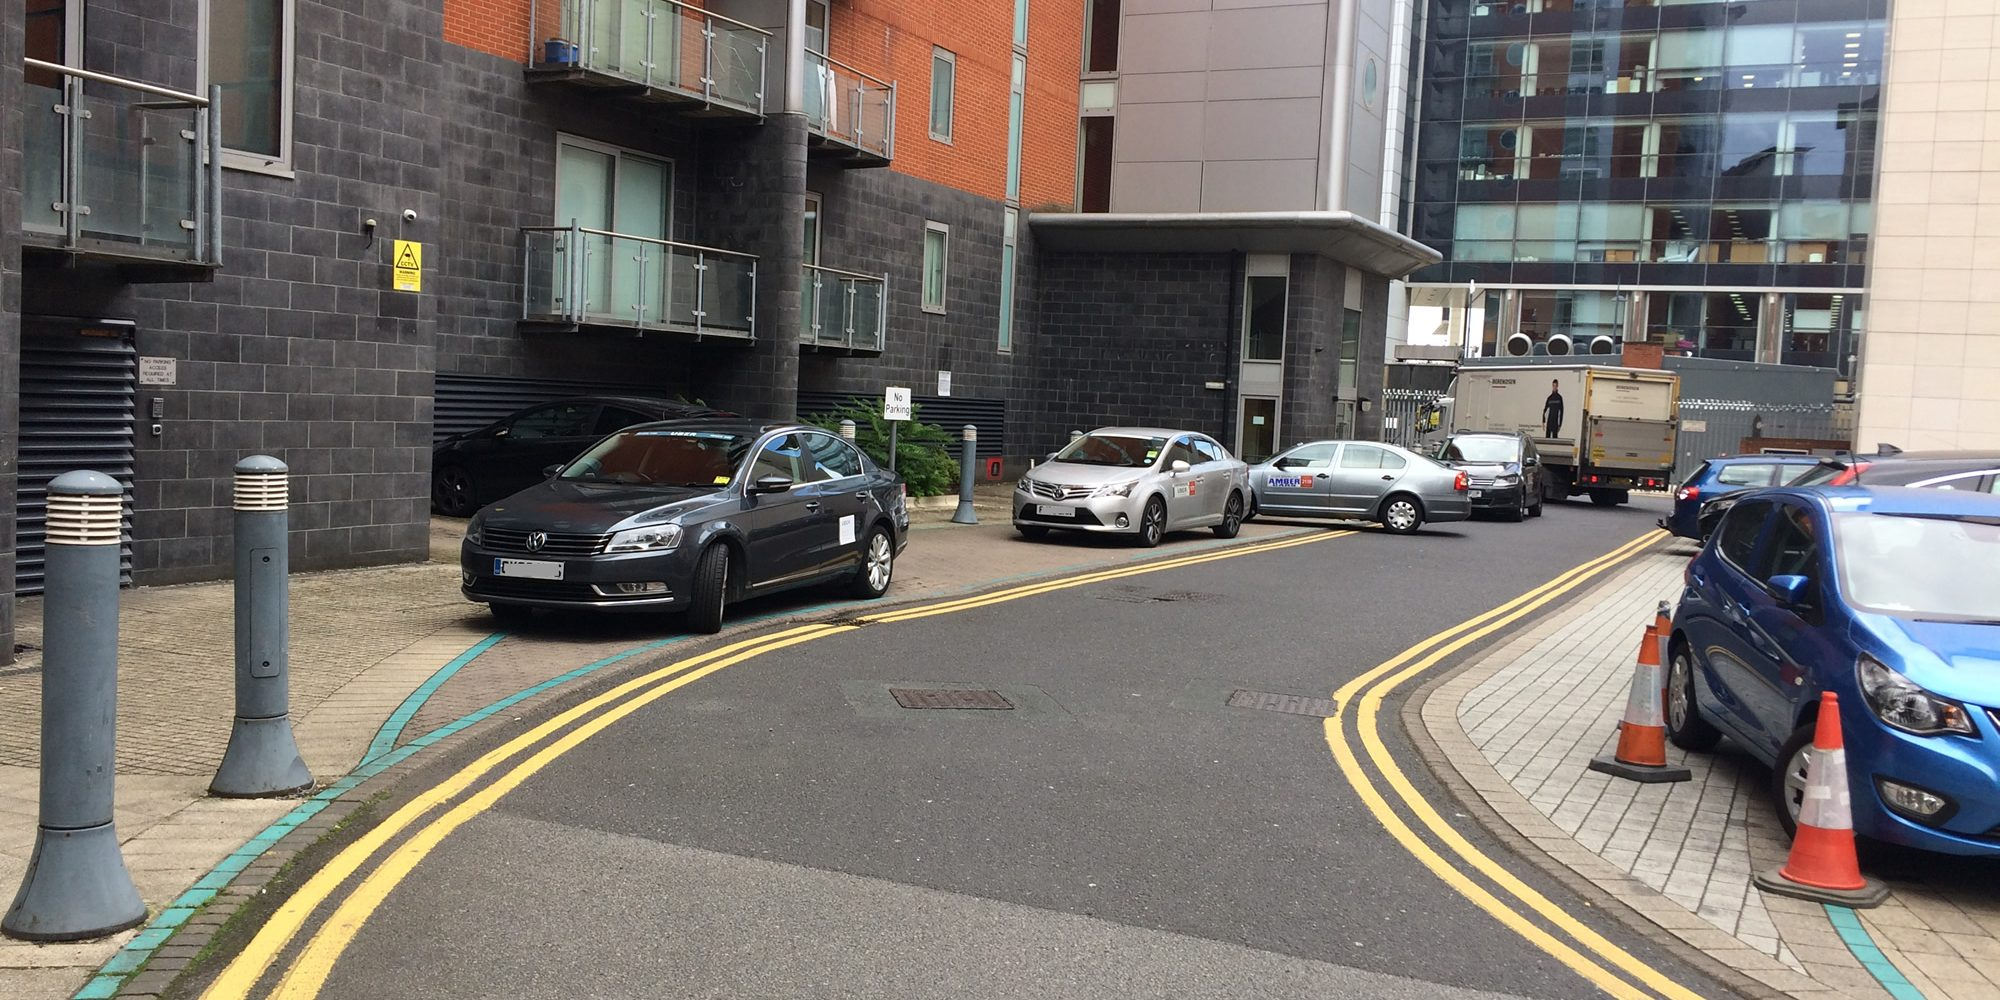 Photo: private hire vehicles